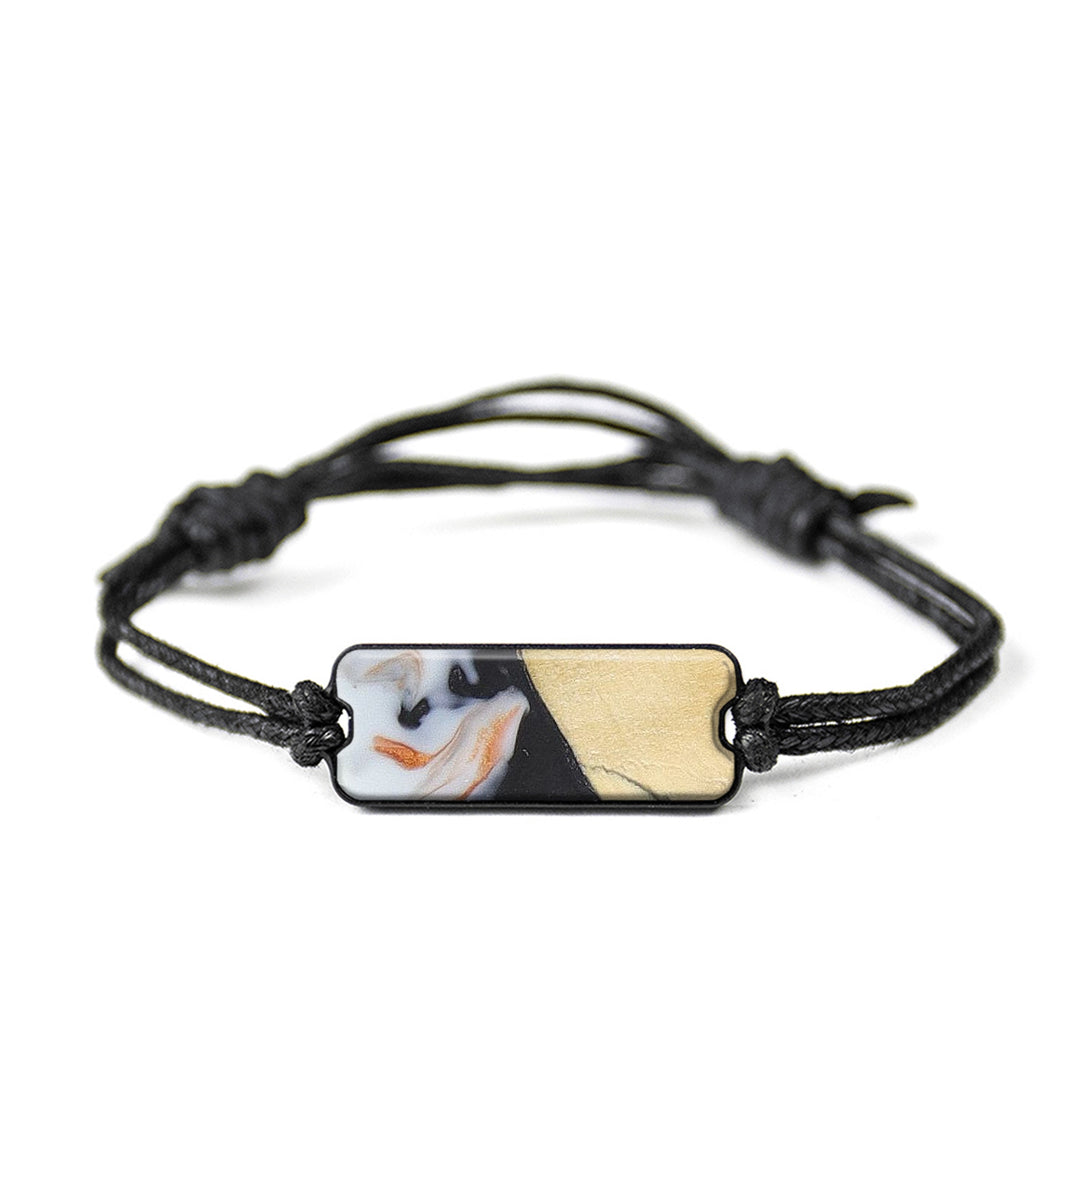 Classic Wood+Resin Bracelet - Philip (Black & White, 393702)